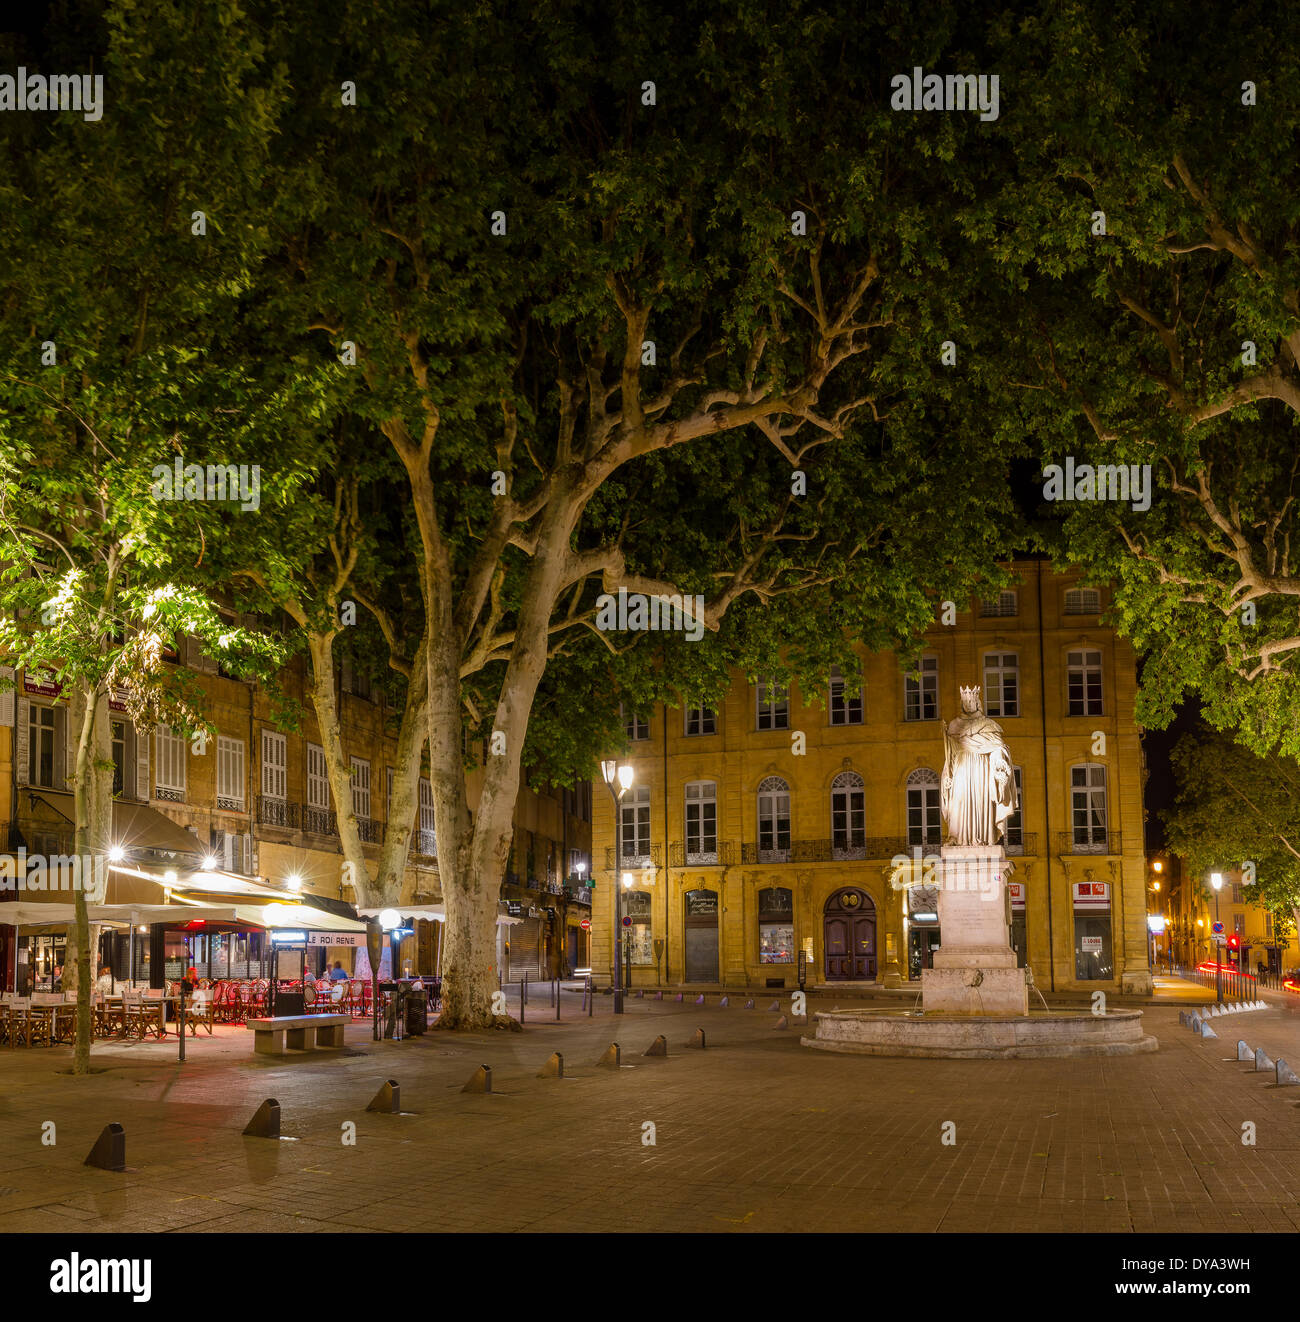 Cours Mirabeau, town, village, forest, wood, trees, summer, night, evening, Aix en Provence, Bouches du Rhone, France, - Stock Image